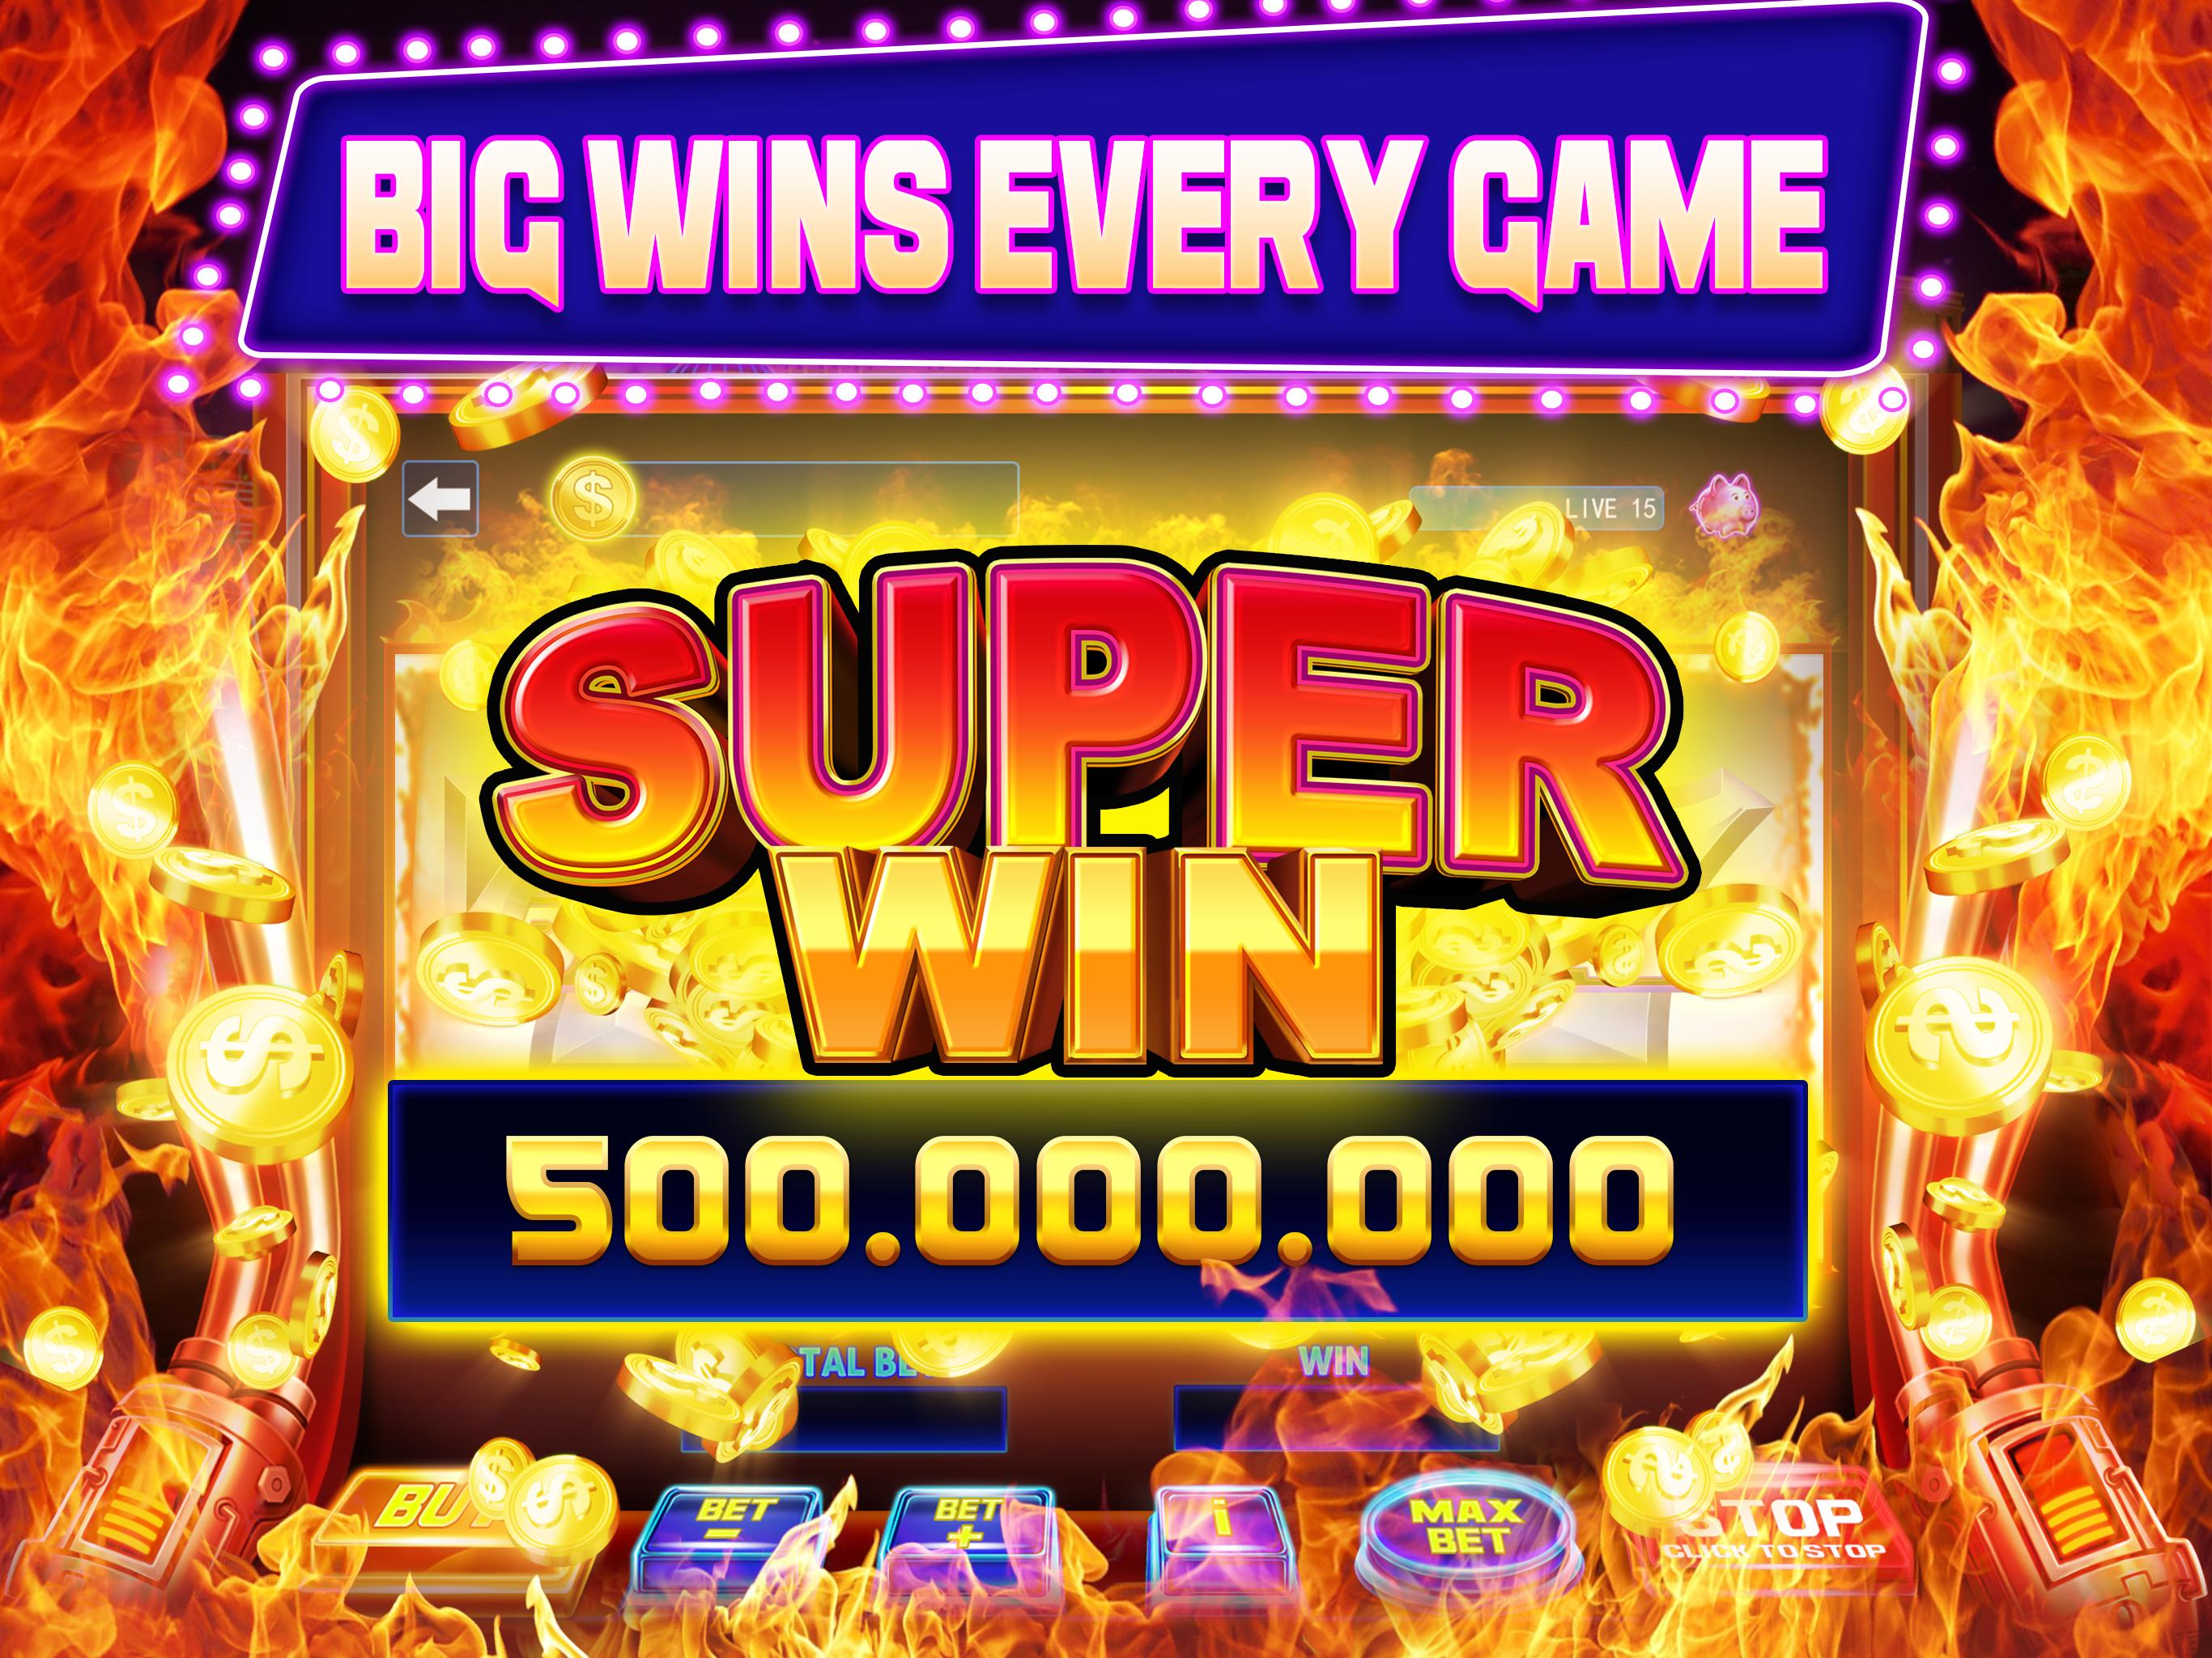 Mega Win Slots for Android - APK Download